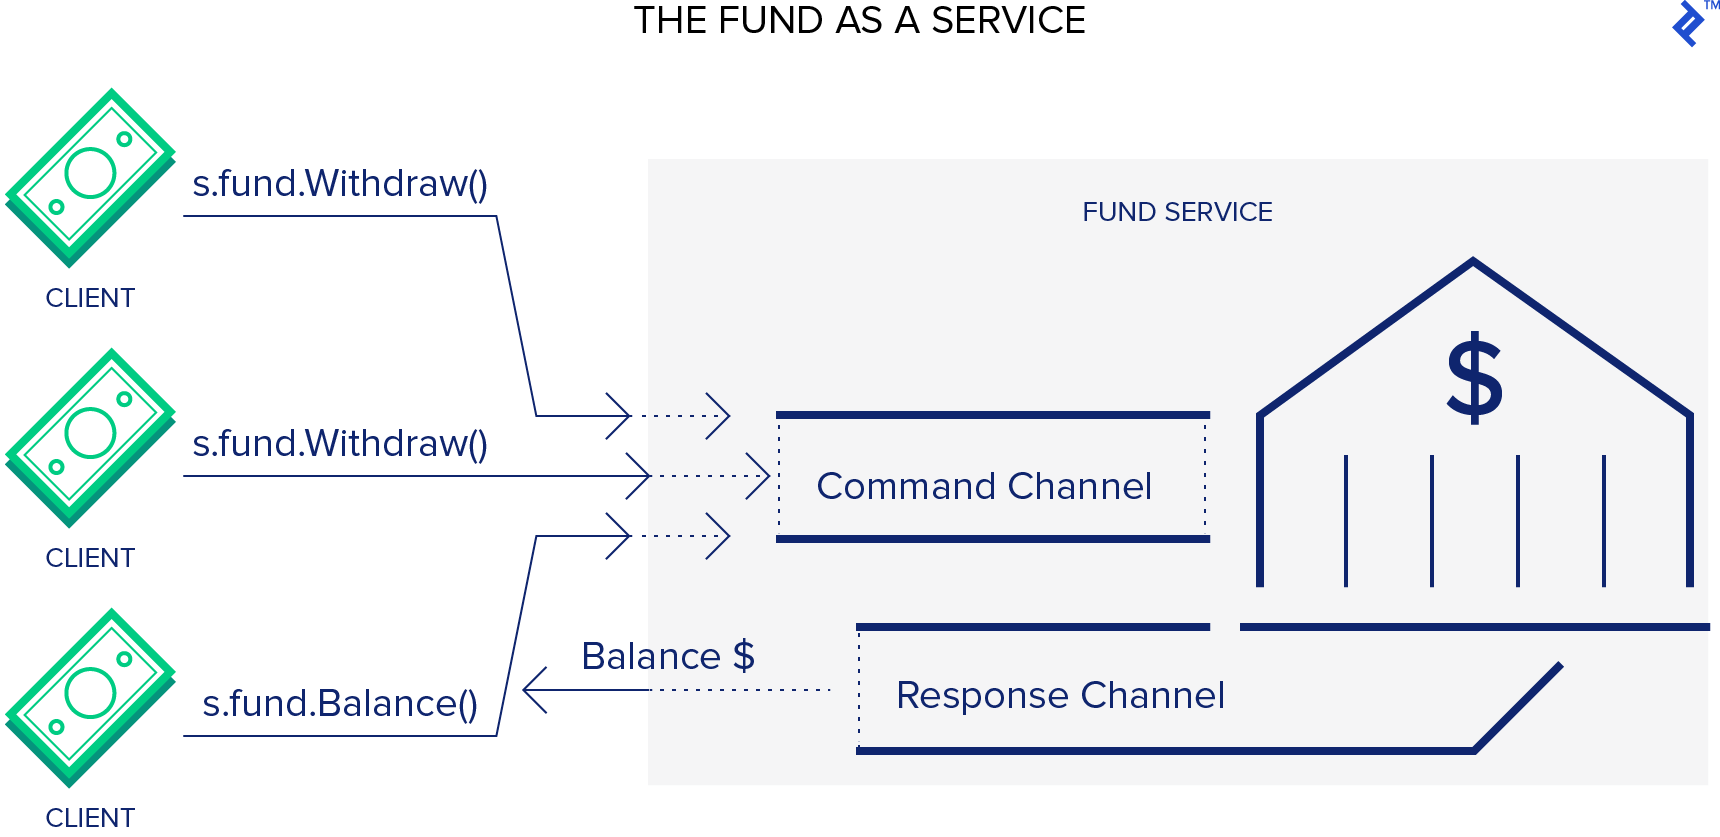 Here is what using the fund as a service might look like in this sample Go language program.